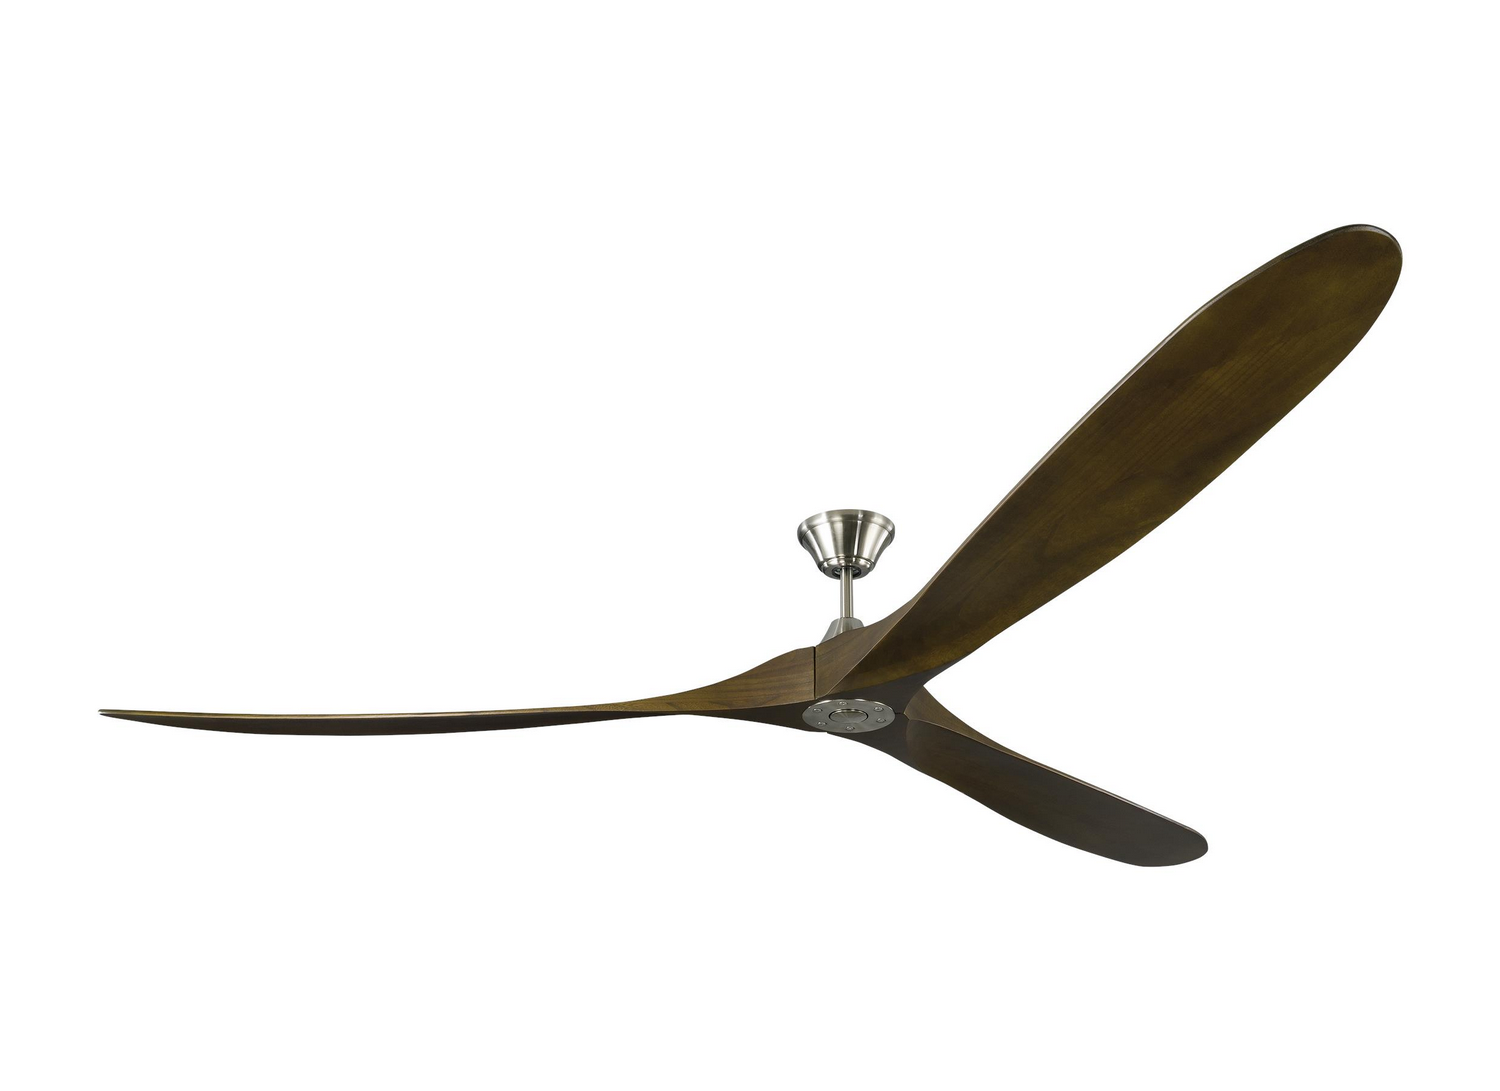 99 inchCeiling Fan from the Maverick Grand collection by Monte Carlo 3MAVR99BS